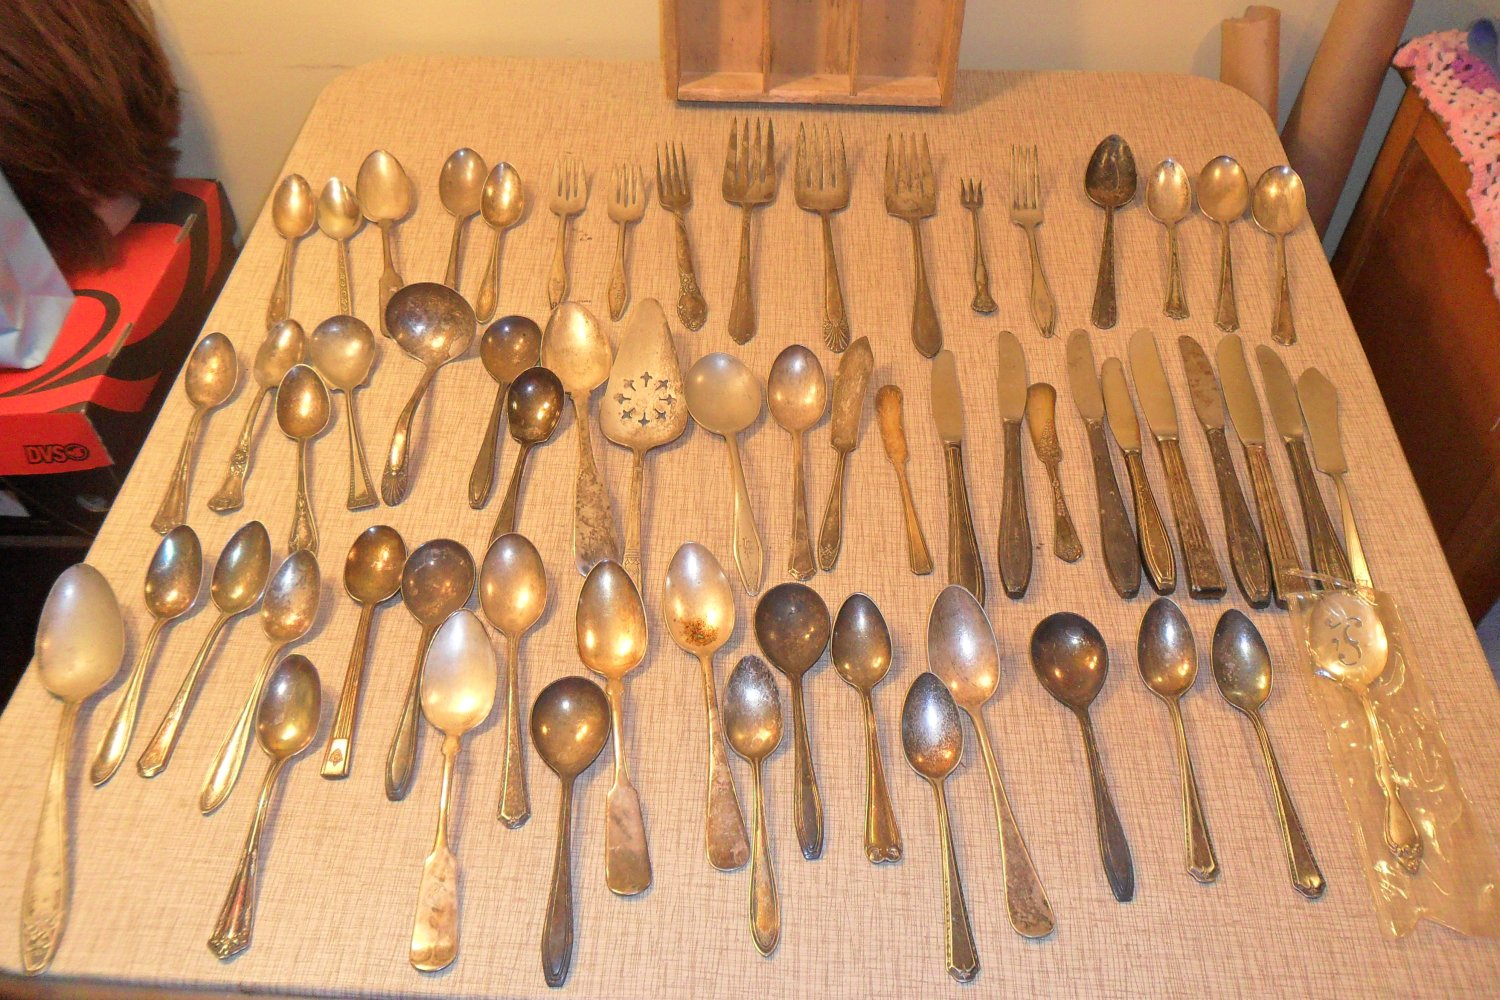 Silverplate Vintage Flatware mixed Lot Silverware 60 Pc Craft (SOLD)